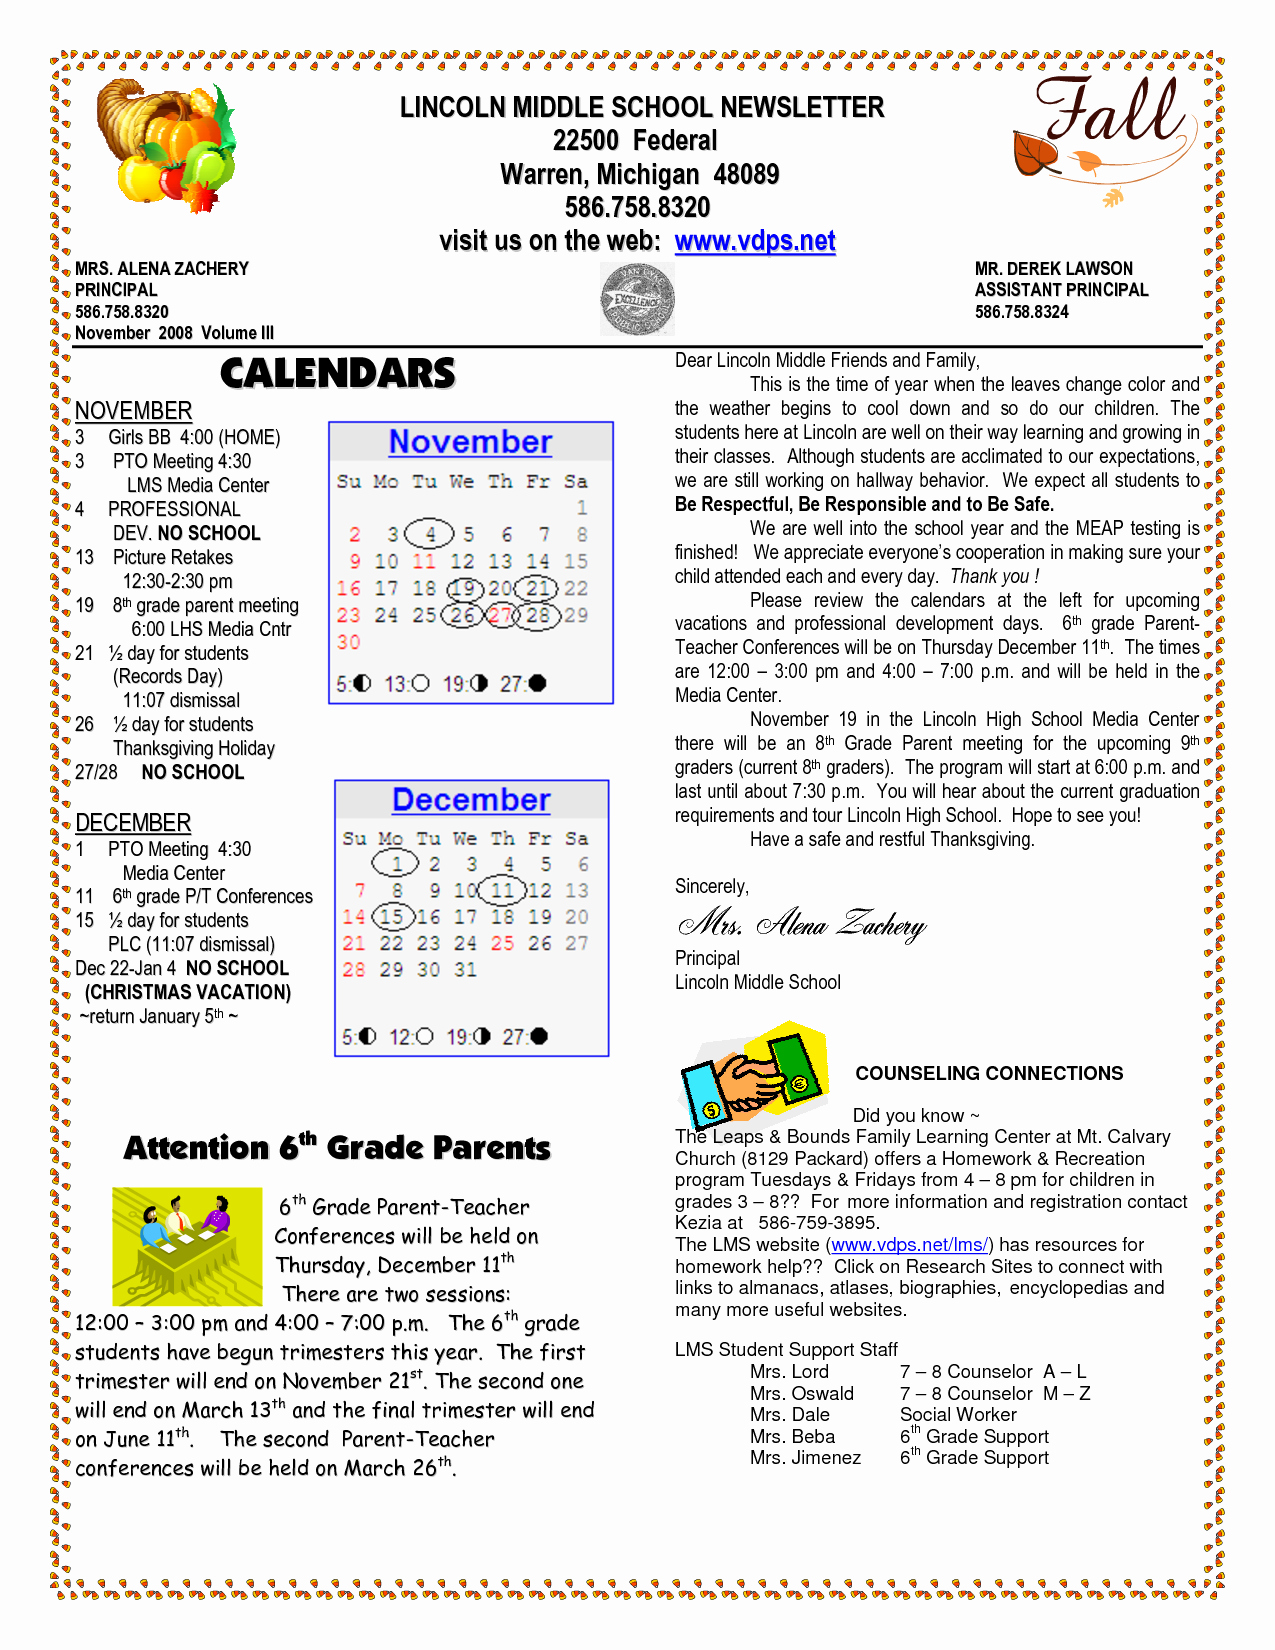 School Newsletter Template Free Awesome School Newsletter Templates